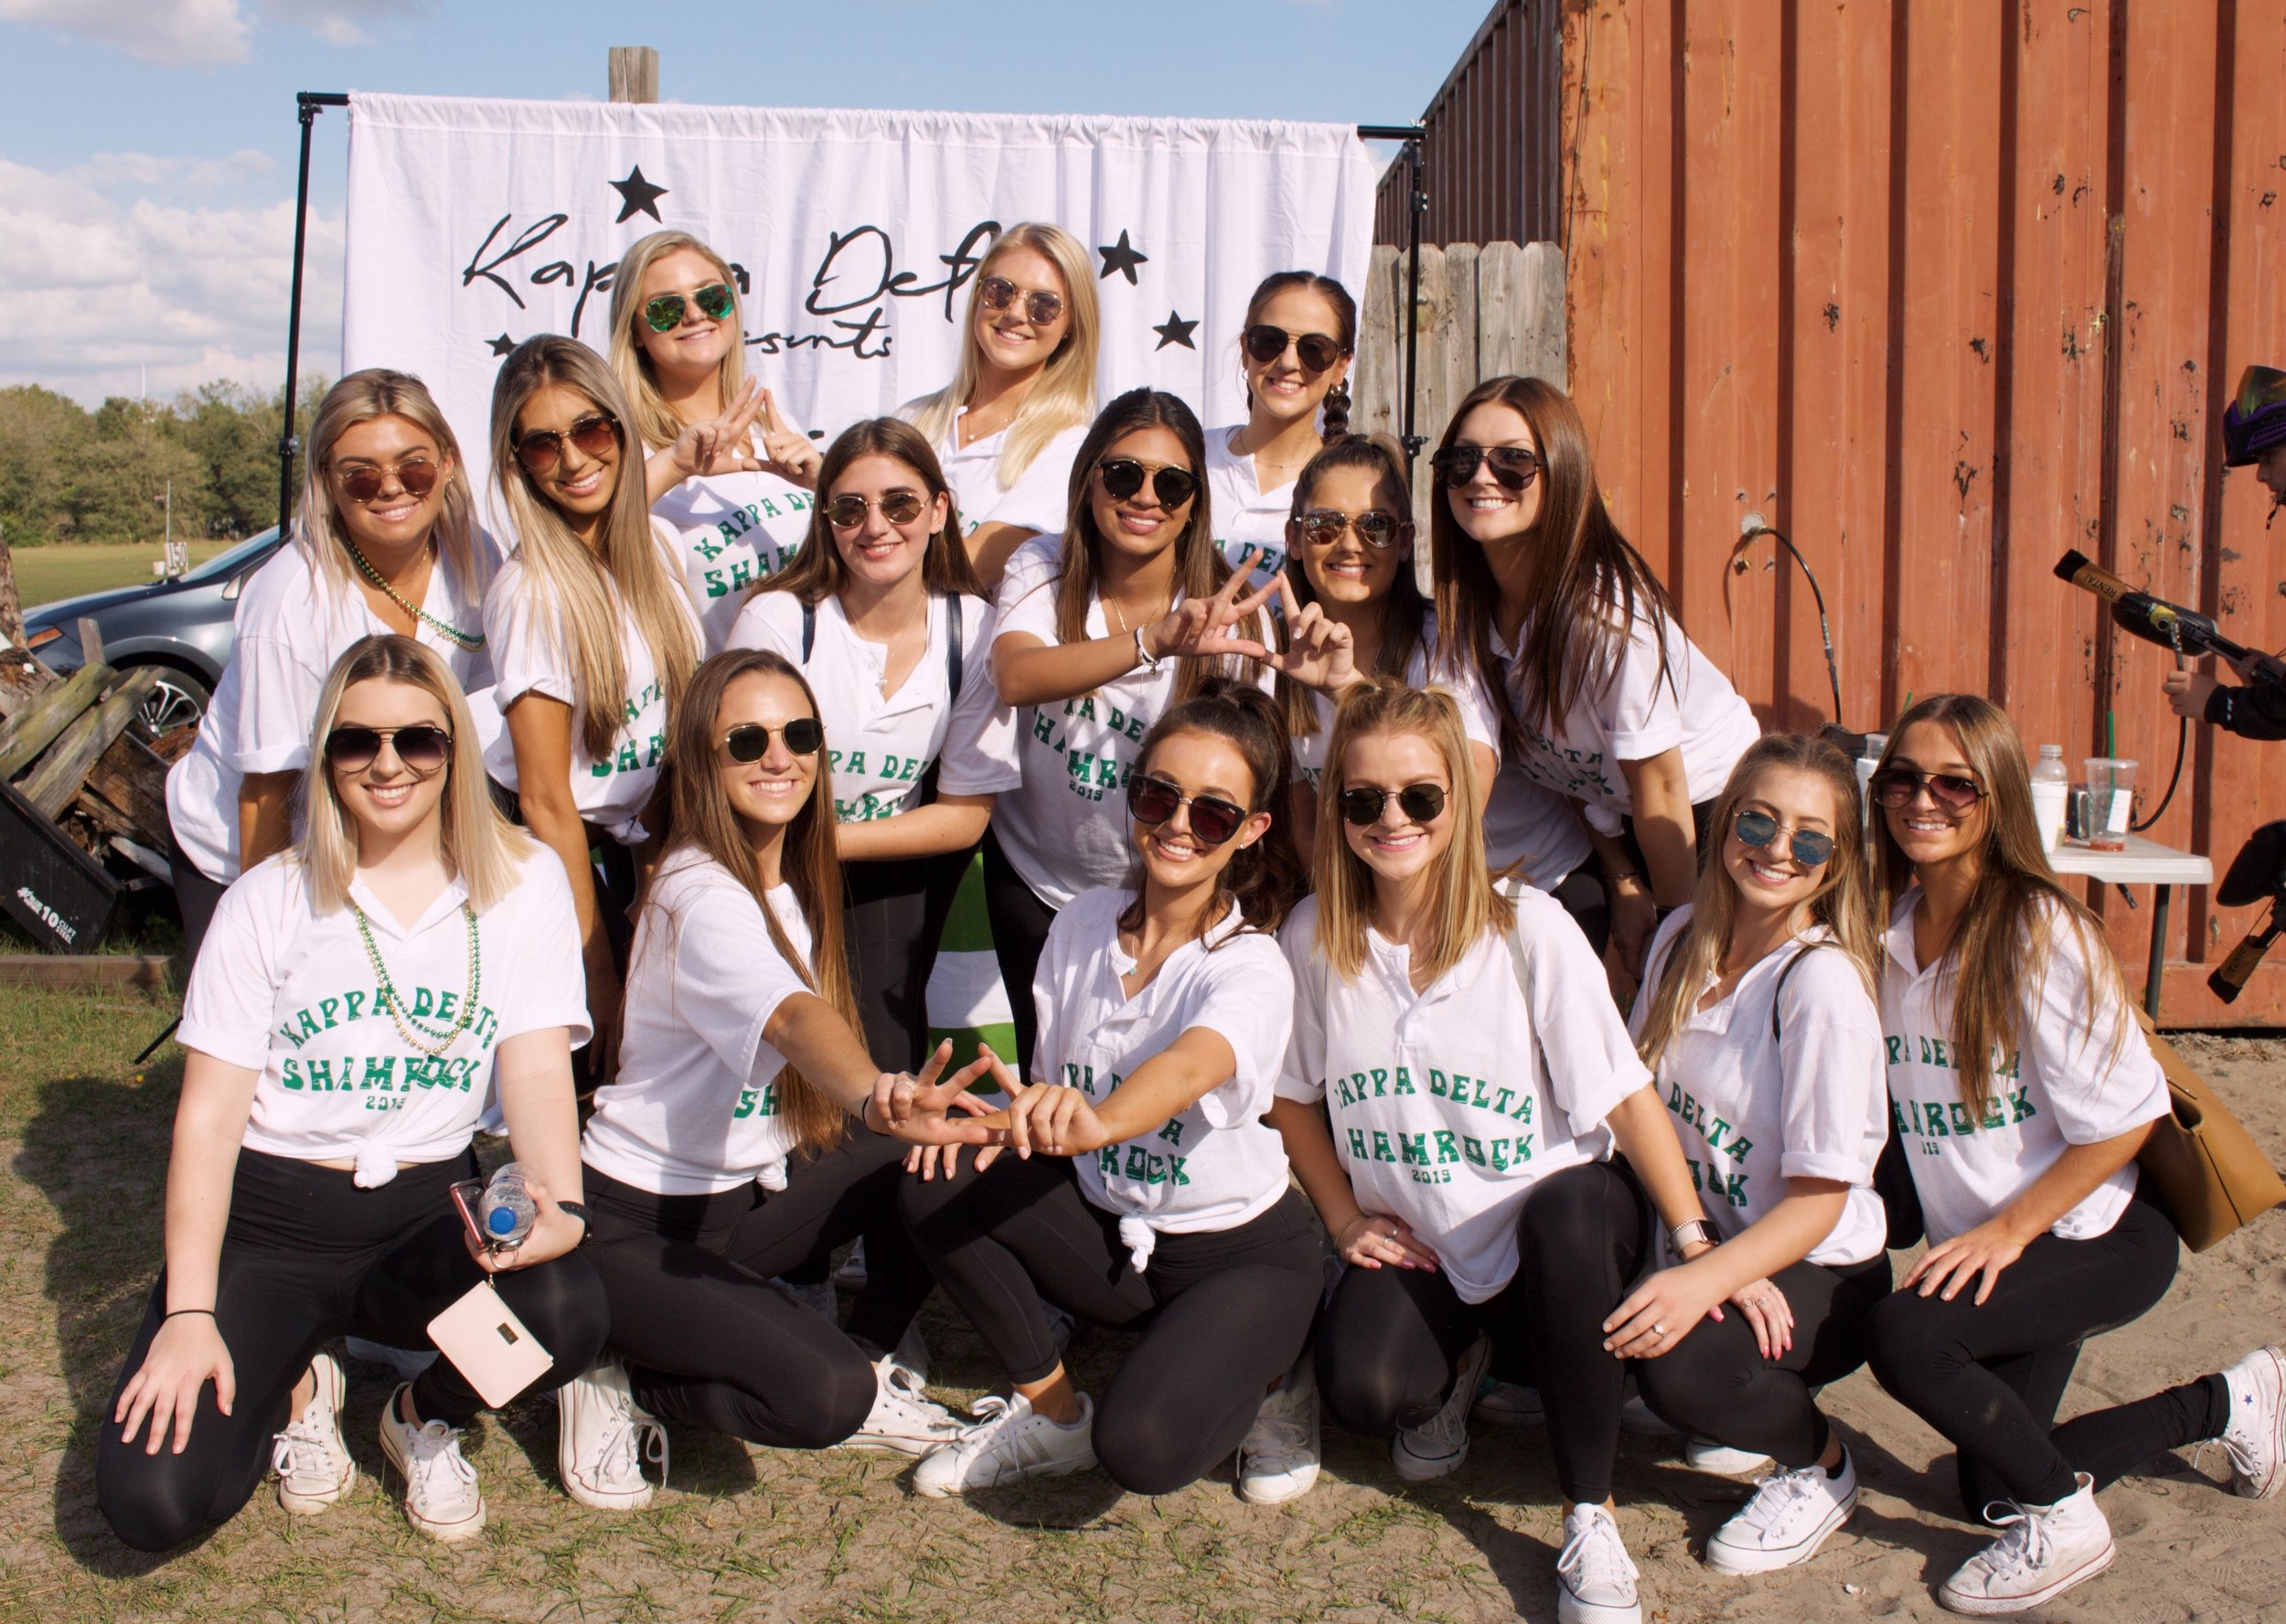 Kappa Delta - Since 1981, Kappa Delta has been a proud supporter of Prevent Child Abuse America. The University of South Florida's chapter of Kappa Delta hosts their annual Shamrock philanthropy in support of the abused and battered children in our community and country. We recognize that every day we each have the opportunity to help create the kind of nation we want to live in. We also recognize that when all children don't have equal opportunity for healthy growth and development, we put our future as a society at risk. Our annual Shamrock event brings together many people in support of a great cause while having a good time. At last year's year's event, with the help of donations, we raised over $20,000!